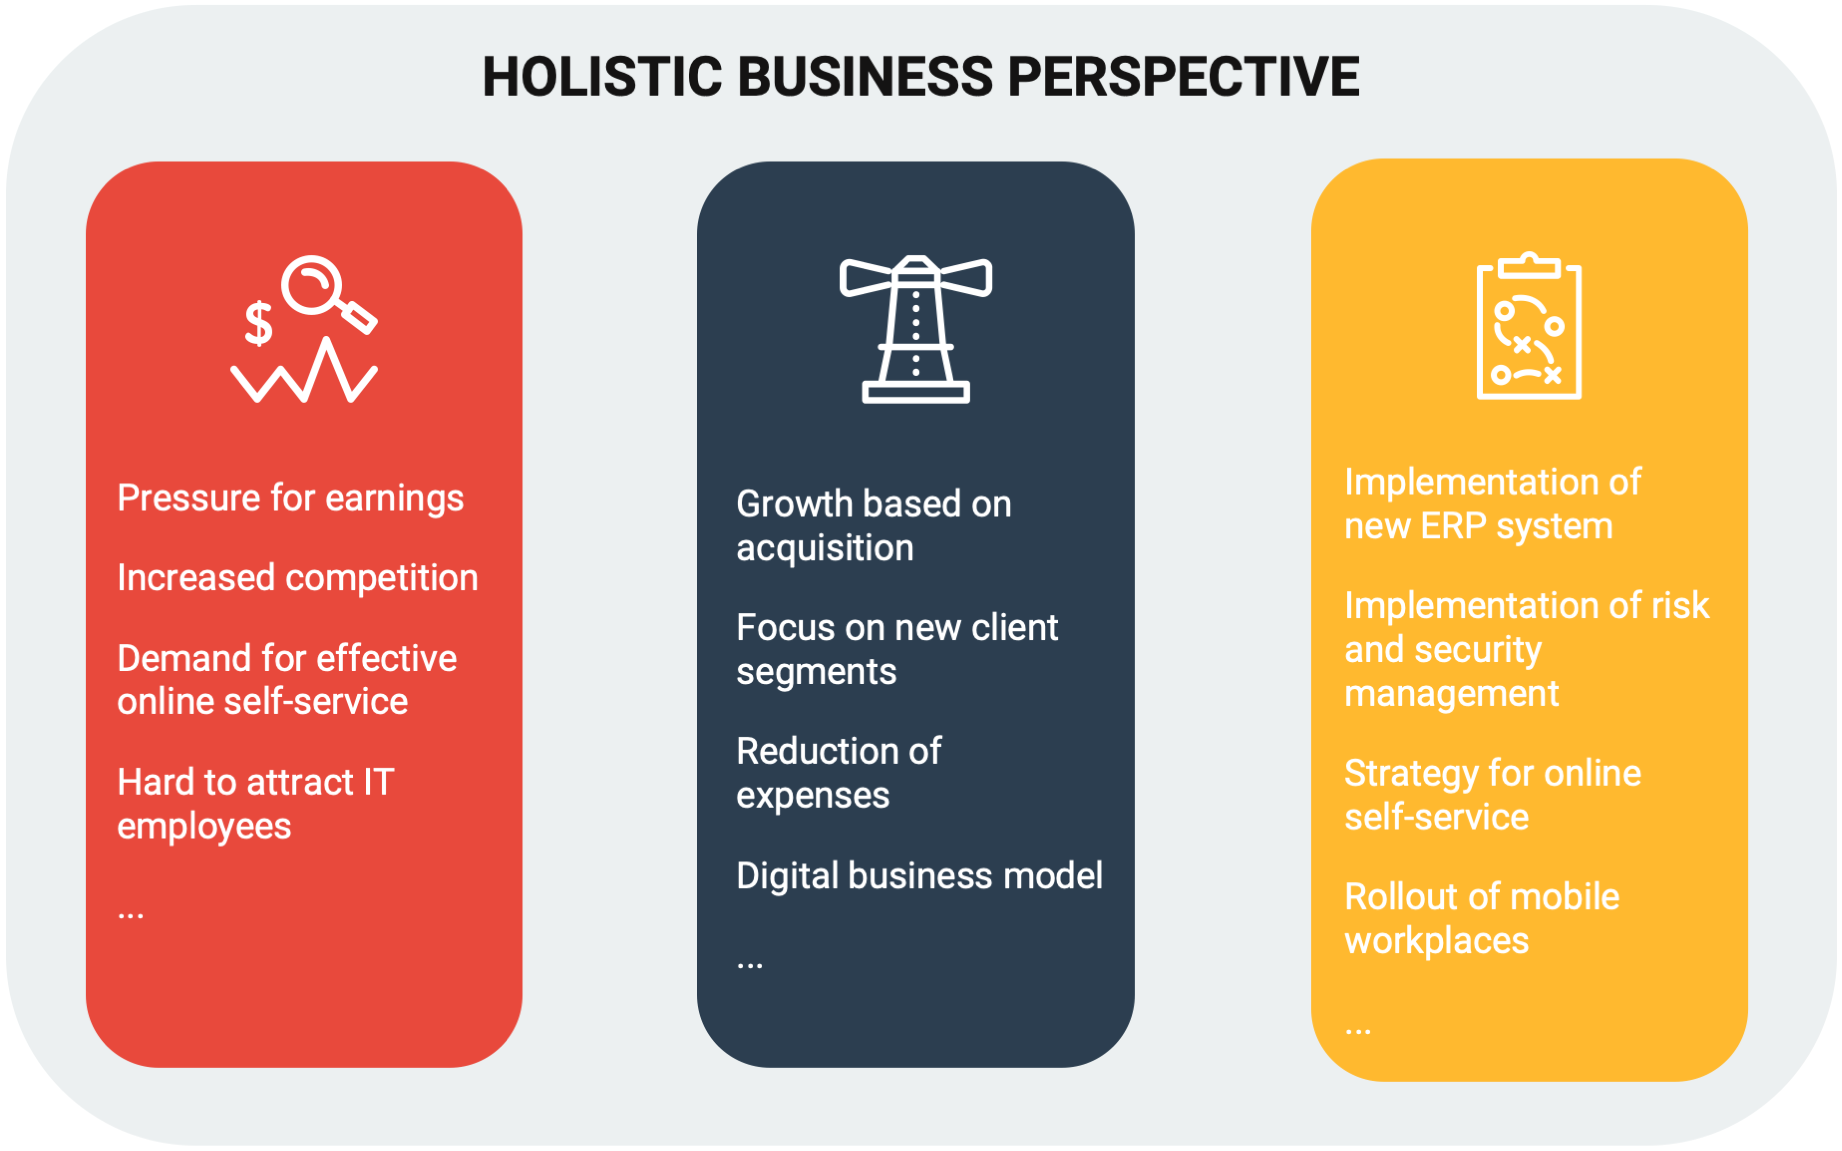 The figure depicts how a holistic business perspective that offers valuable input to strategic work.